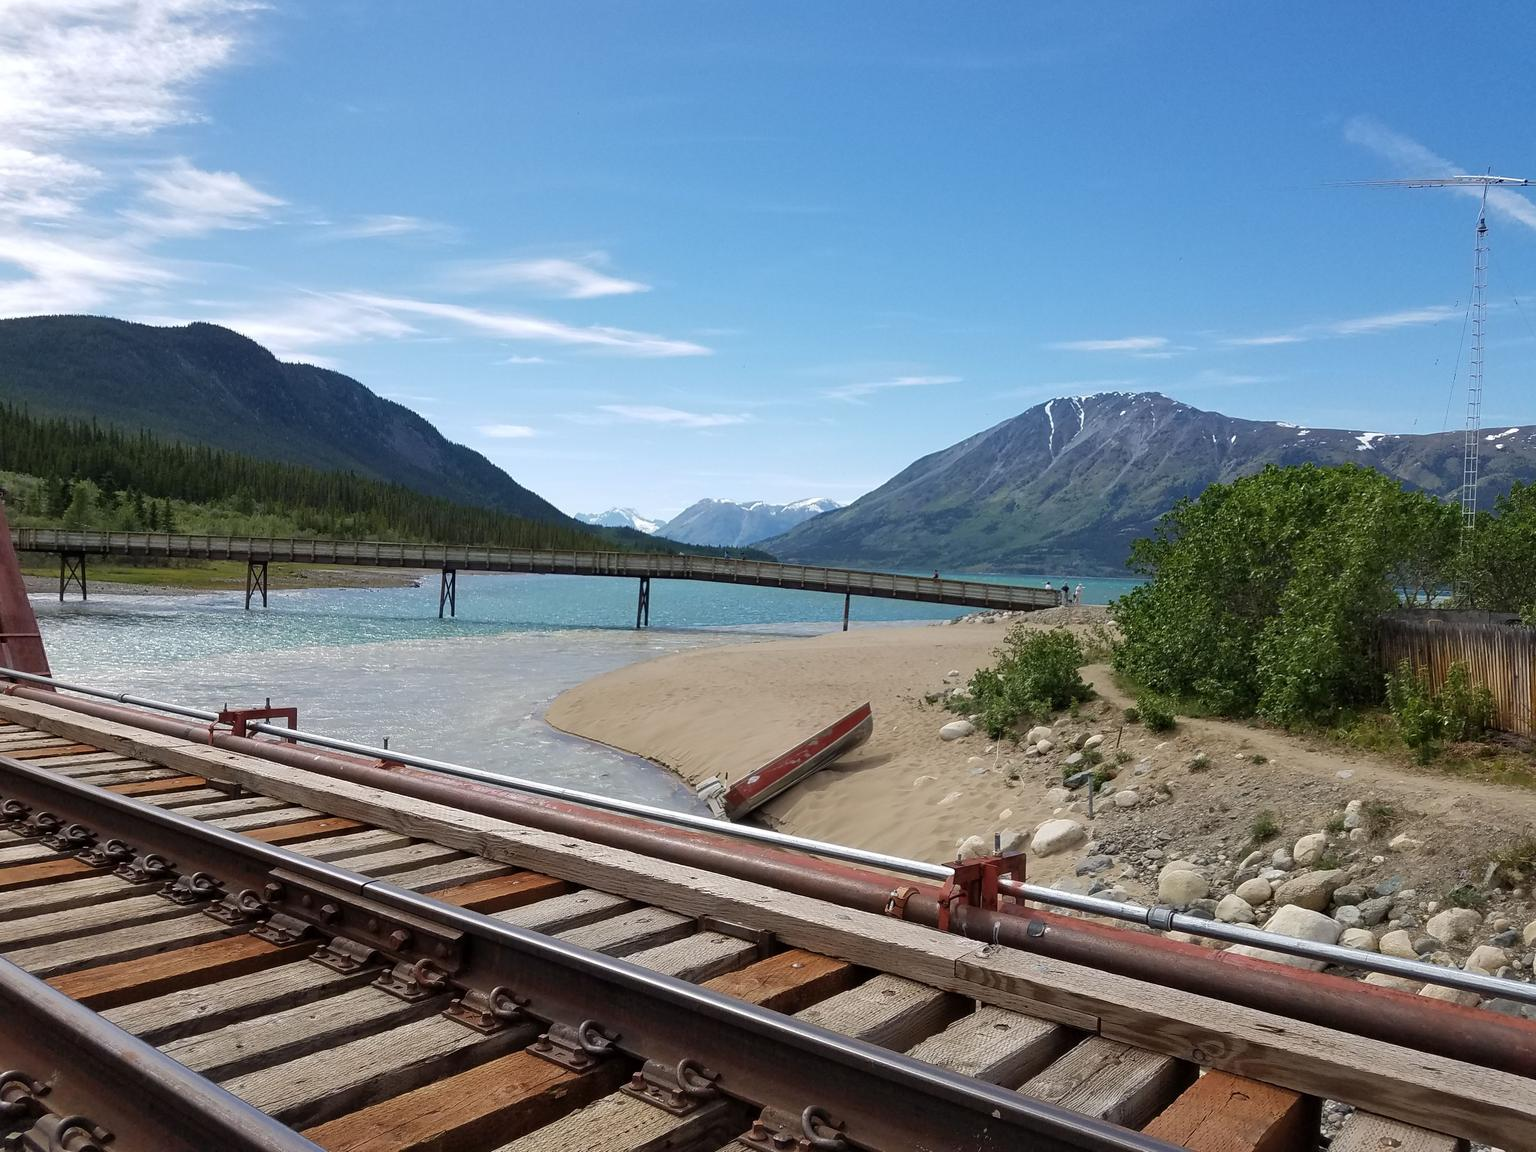 Skagway Shore Excursion: Full-Day Tour of the Yukon